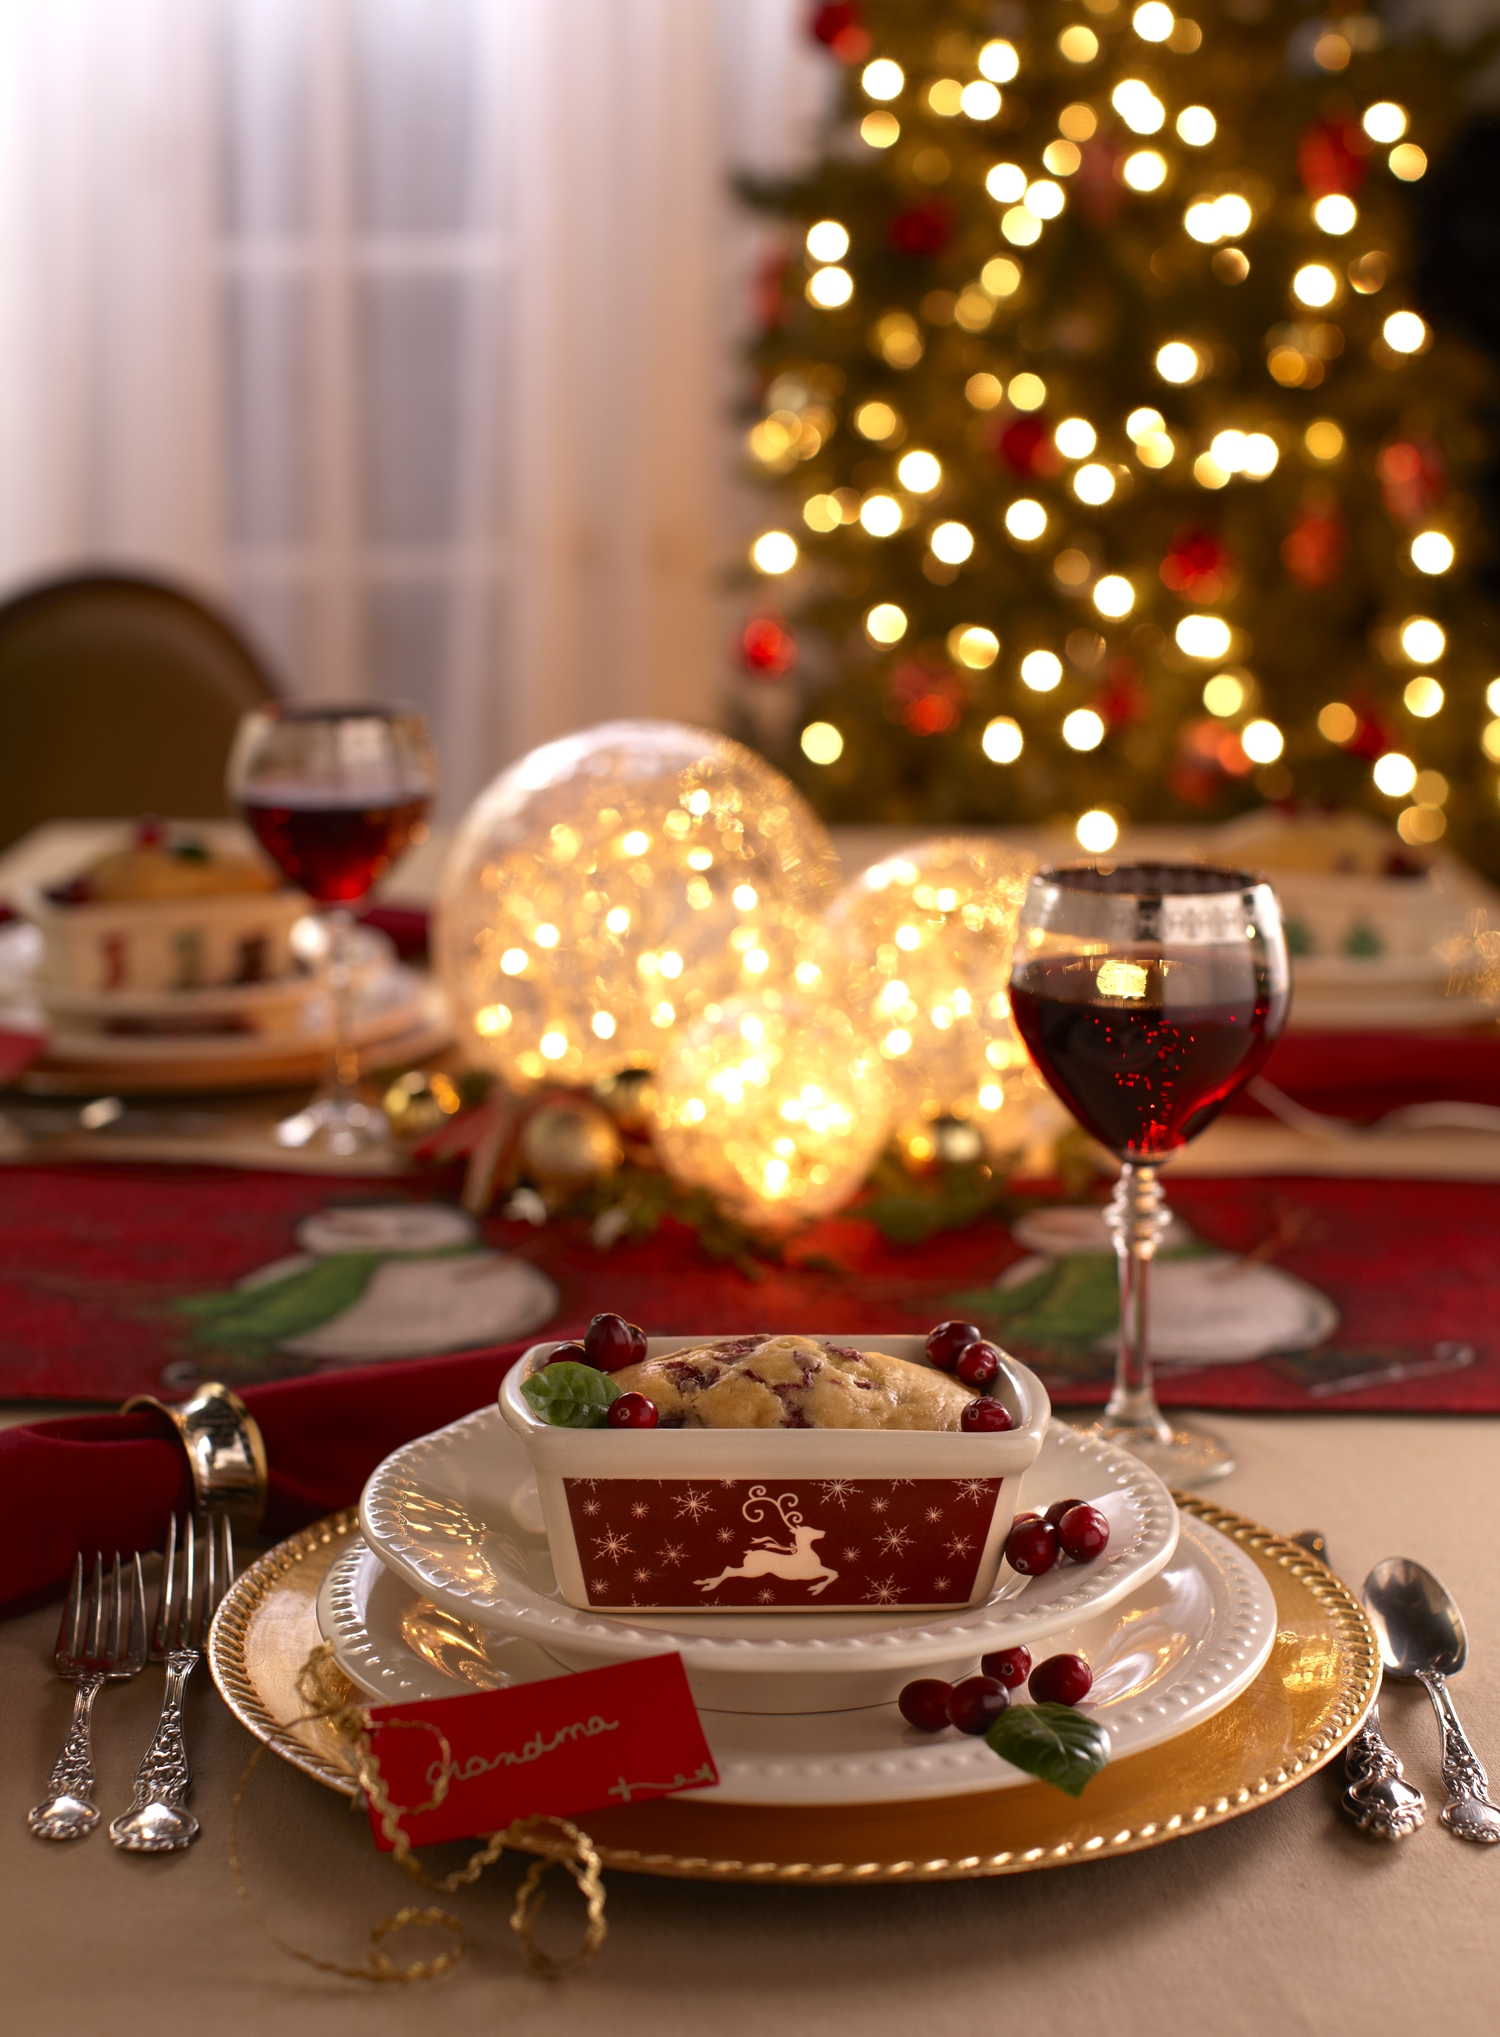 ART DIRECTION + FOOD STYLING   for holiday covers.